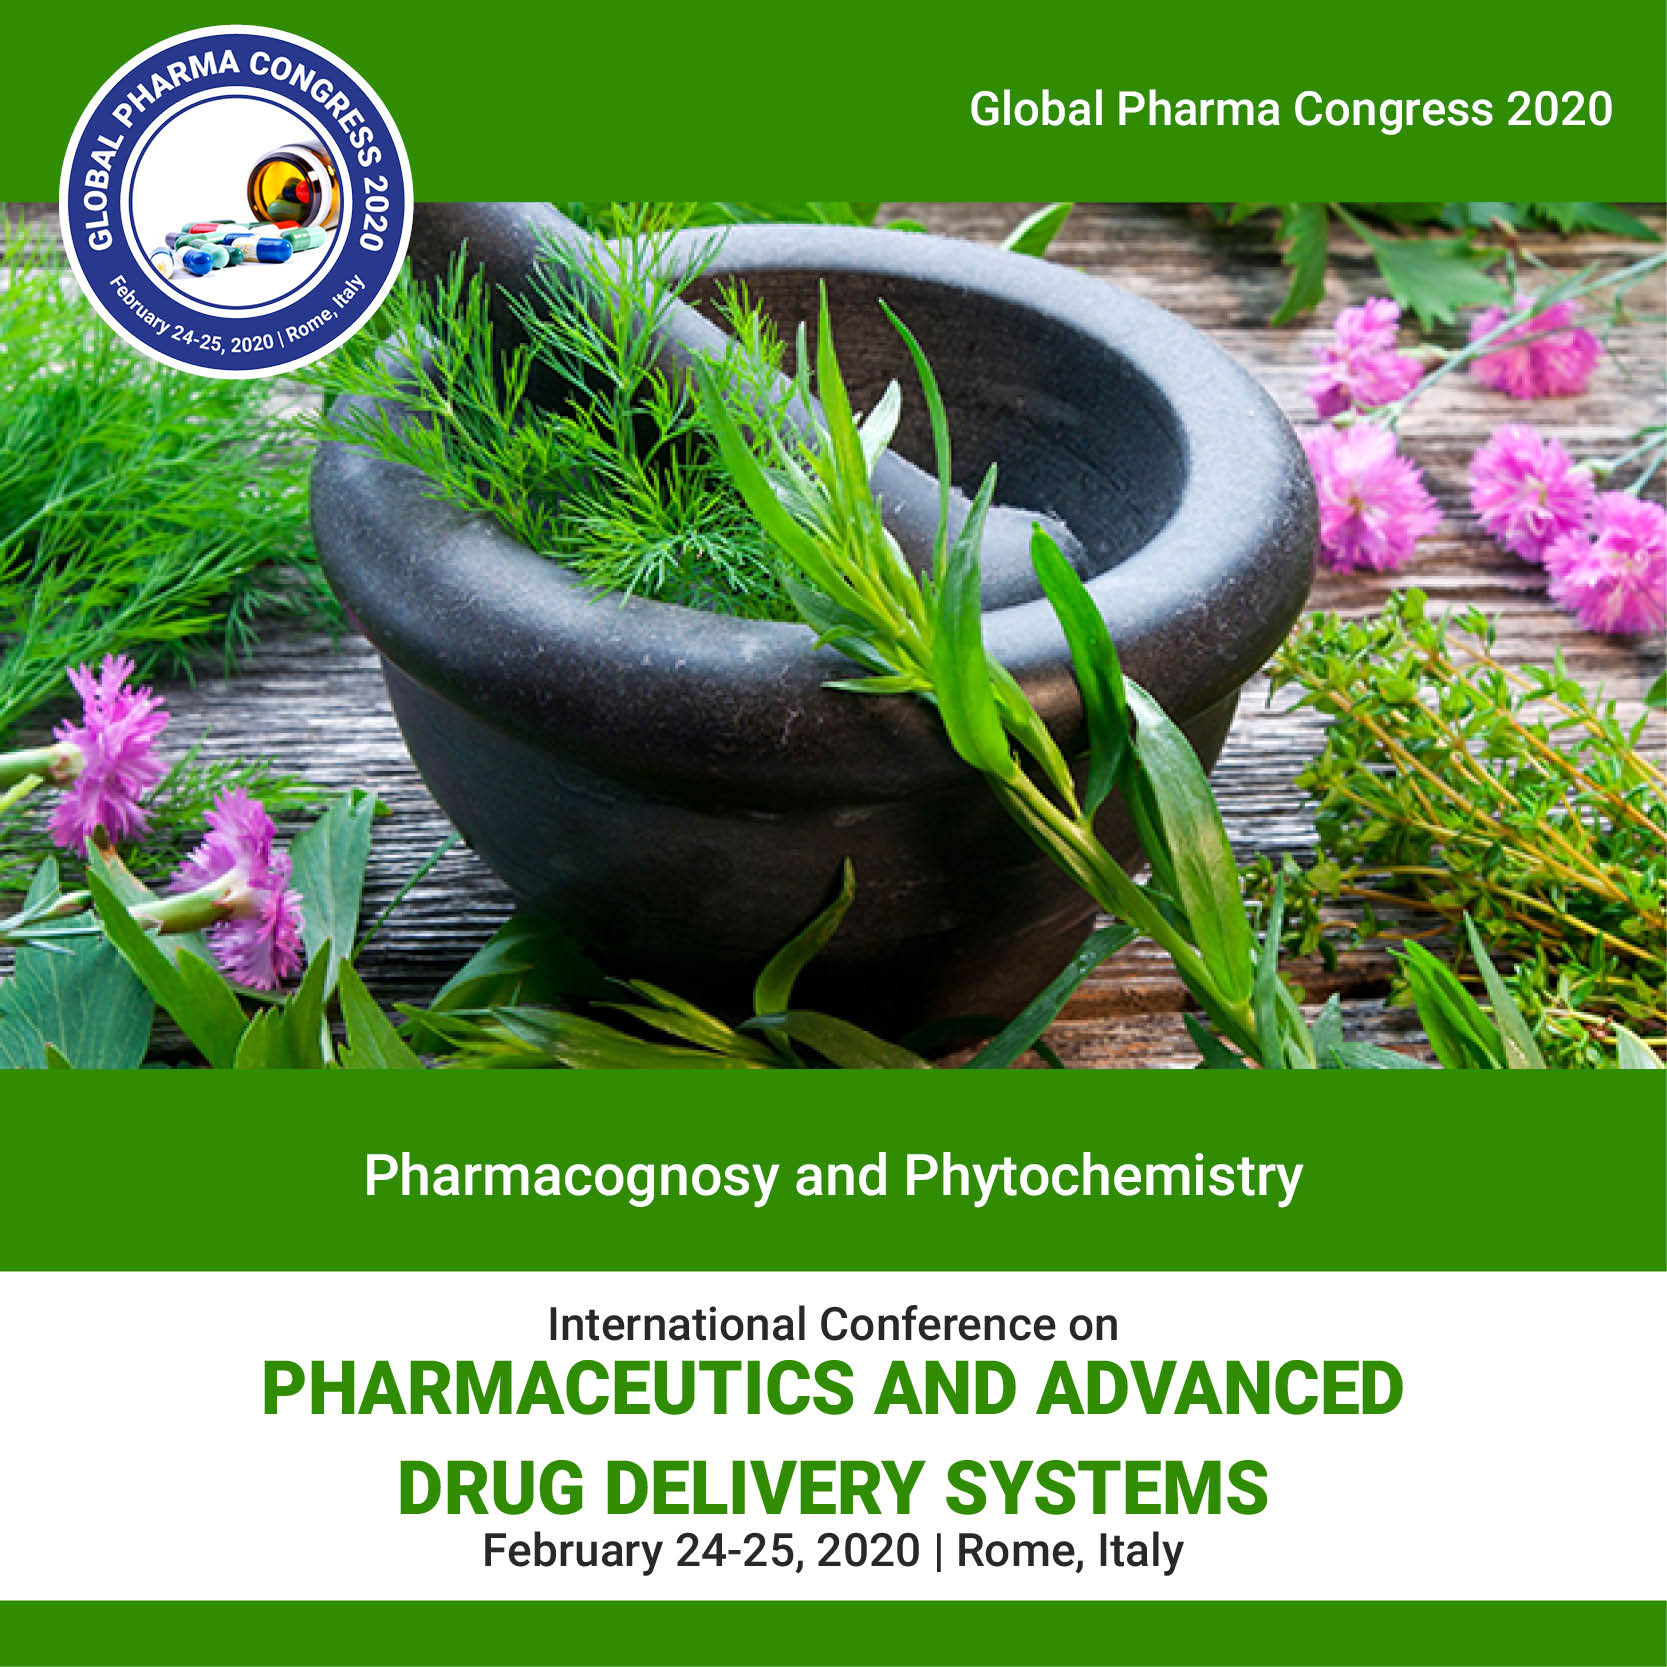 Pharmacognosy and Phytochemistry Photo